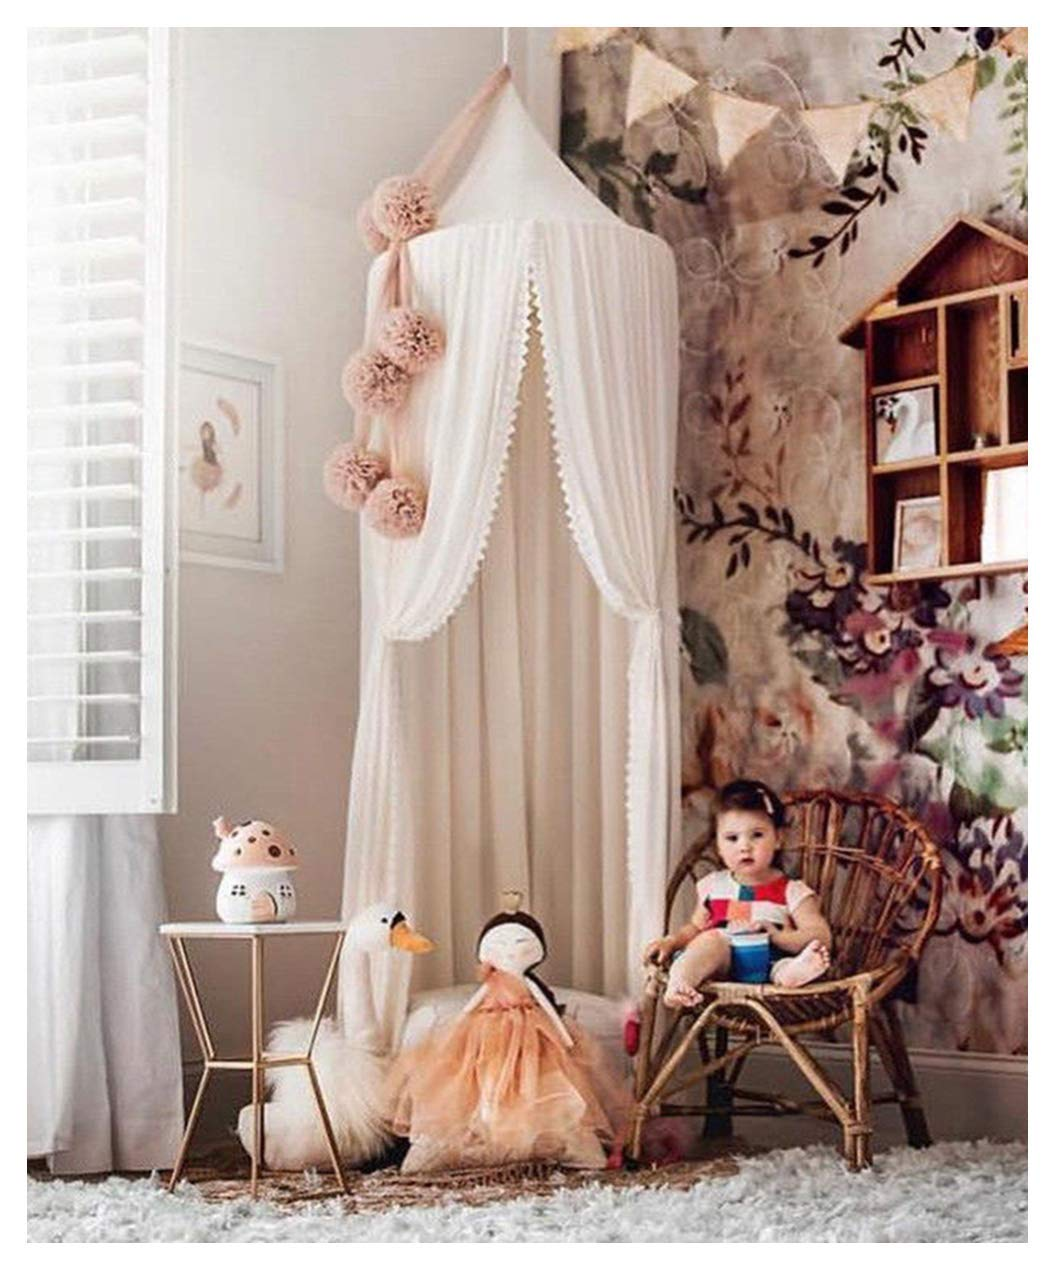 Dome Princess Bed Canopy Bedcover Curtain Tent Childrens Room Decorate for Baby Kids Indoor Outdoor Playing Reading 240cm with Lace Trim Pink ivivian Mosquito Net Canopy